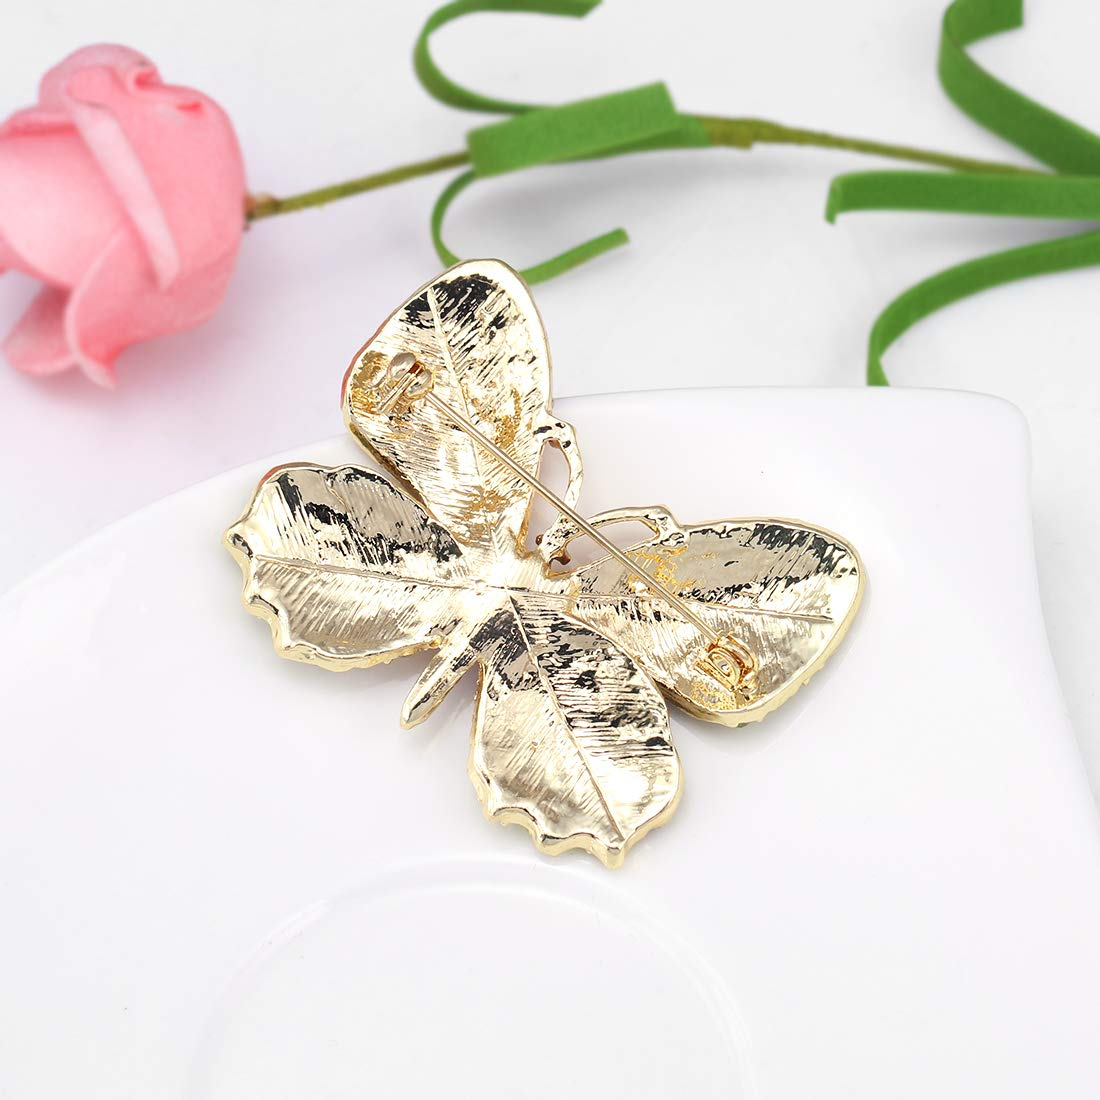 WeimanJewelry Lot6pcs Multicolor Rhinestone Crystal Butterfly Brooch Pin Set for Women by WeimanJewelry (Image #6)